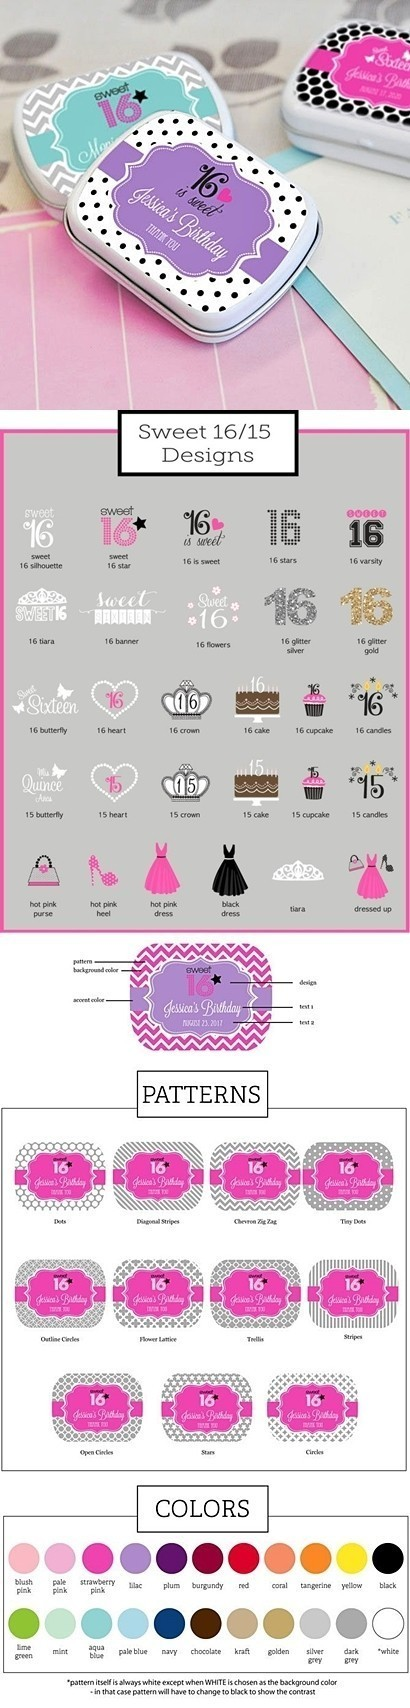 Cute Quinceañera/Sweet 16 Personalized Mint Tins